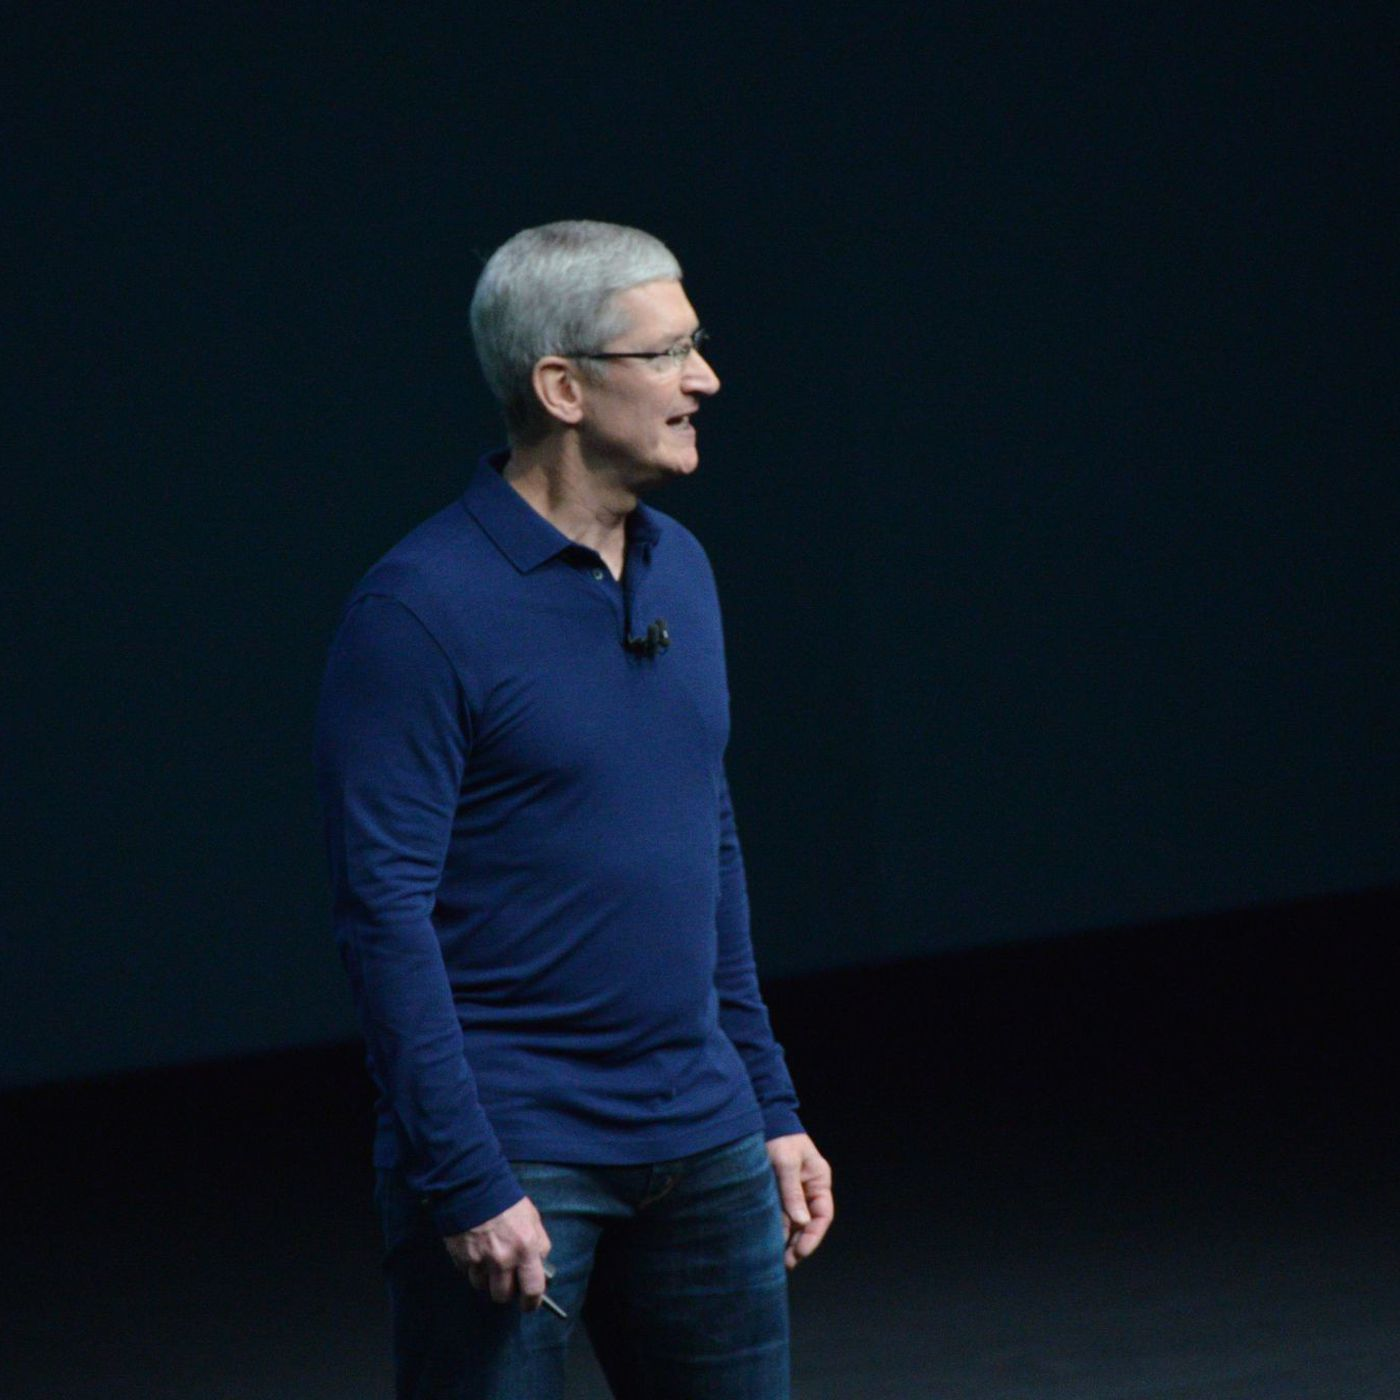 recode.net - Shirin Ghaffary - Inside Apple's push toward the services side of its business